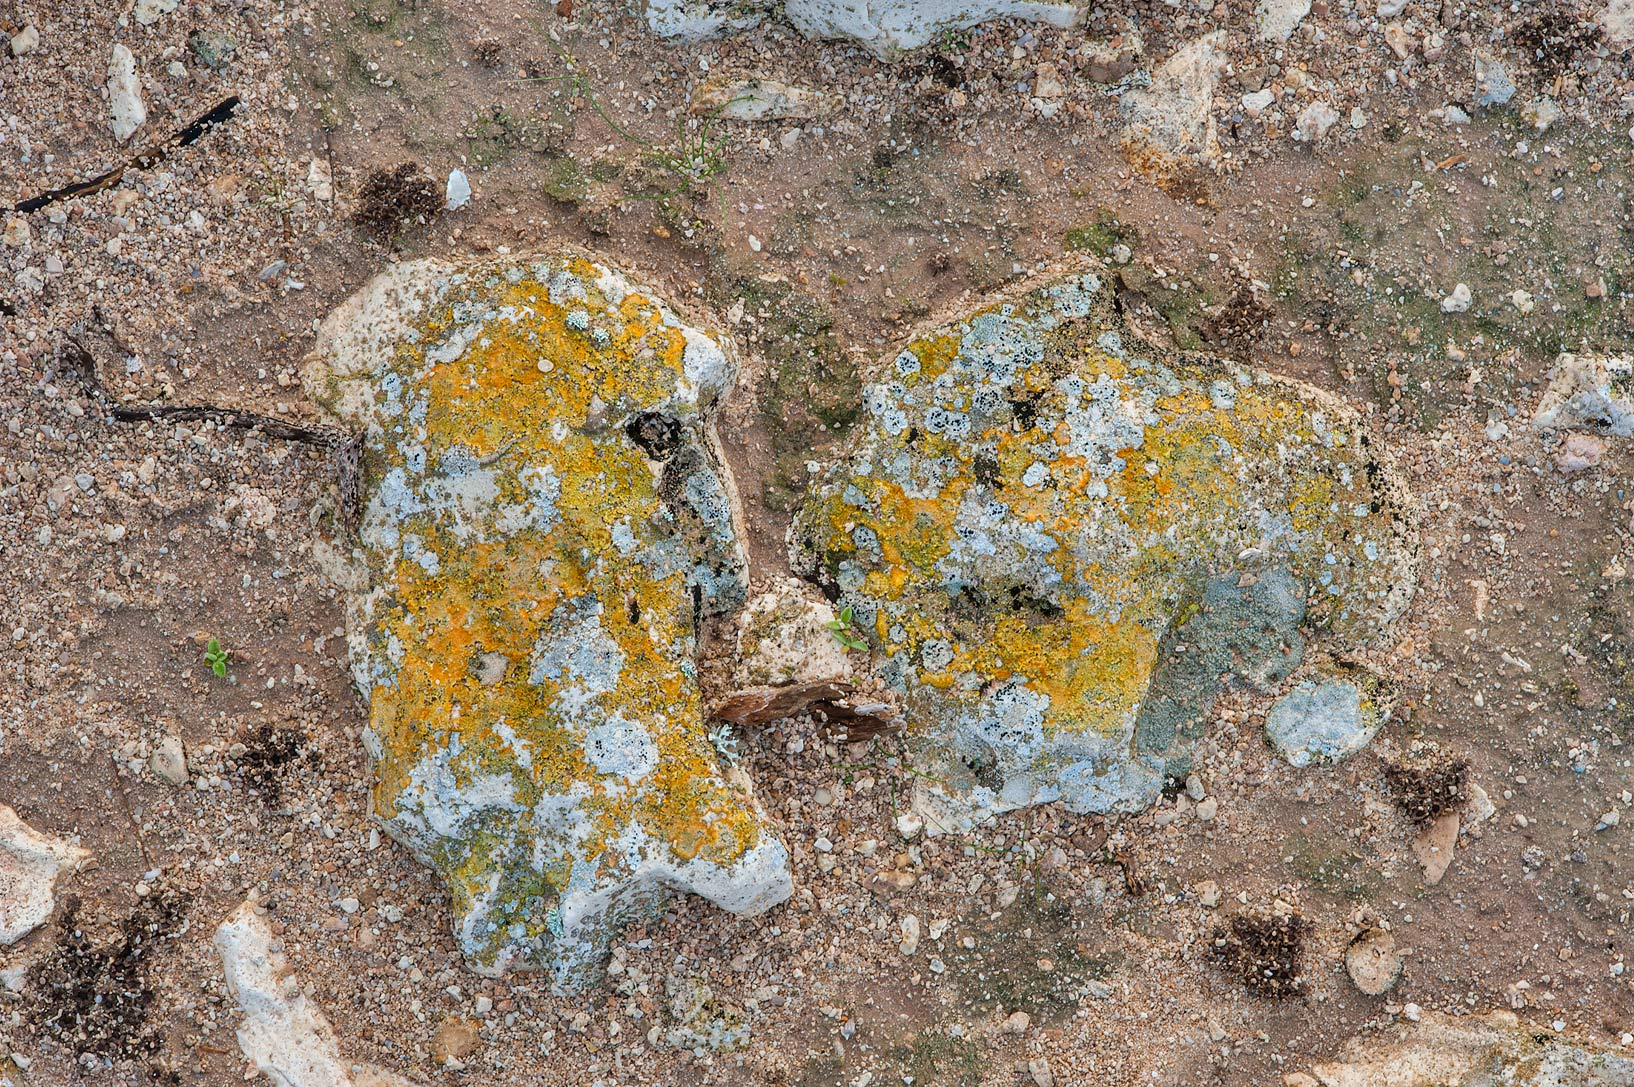 Golden lichen on stones near Jabal Al Jassasiya, on north-eastern coast. Qatar